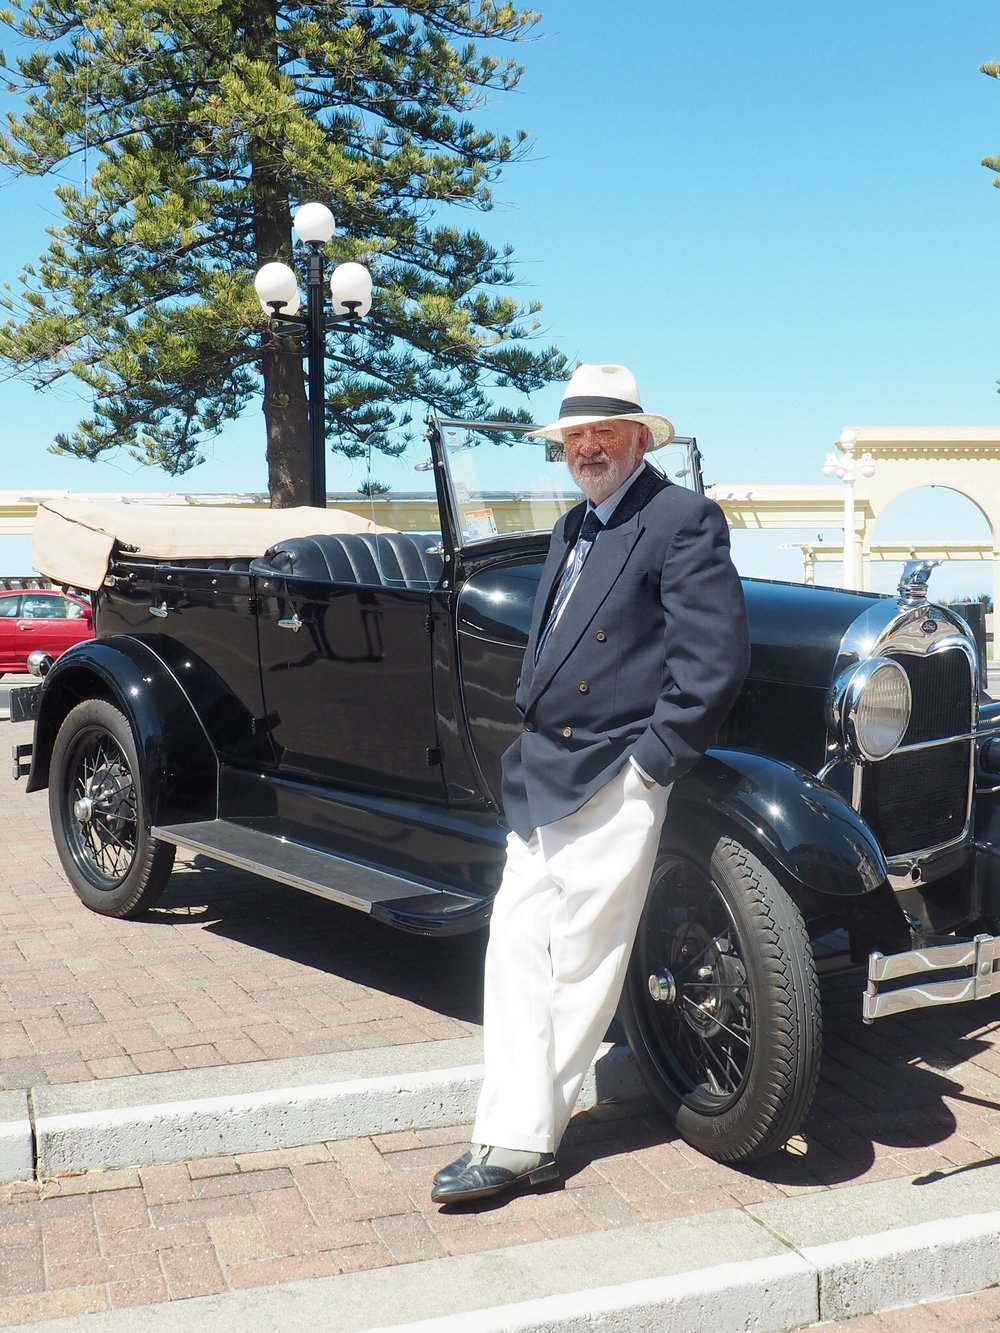 Leigh Patterson & his vintage car. Napier. New Zealand.